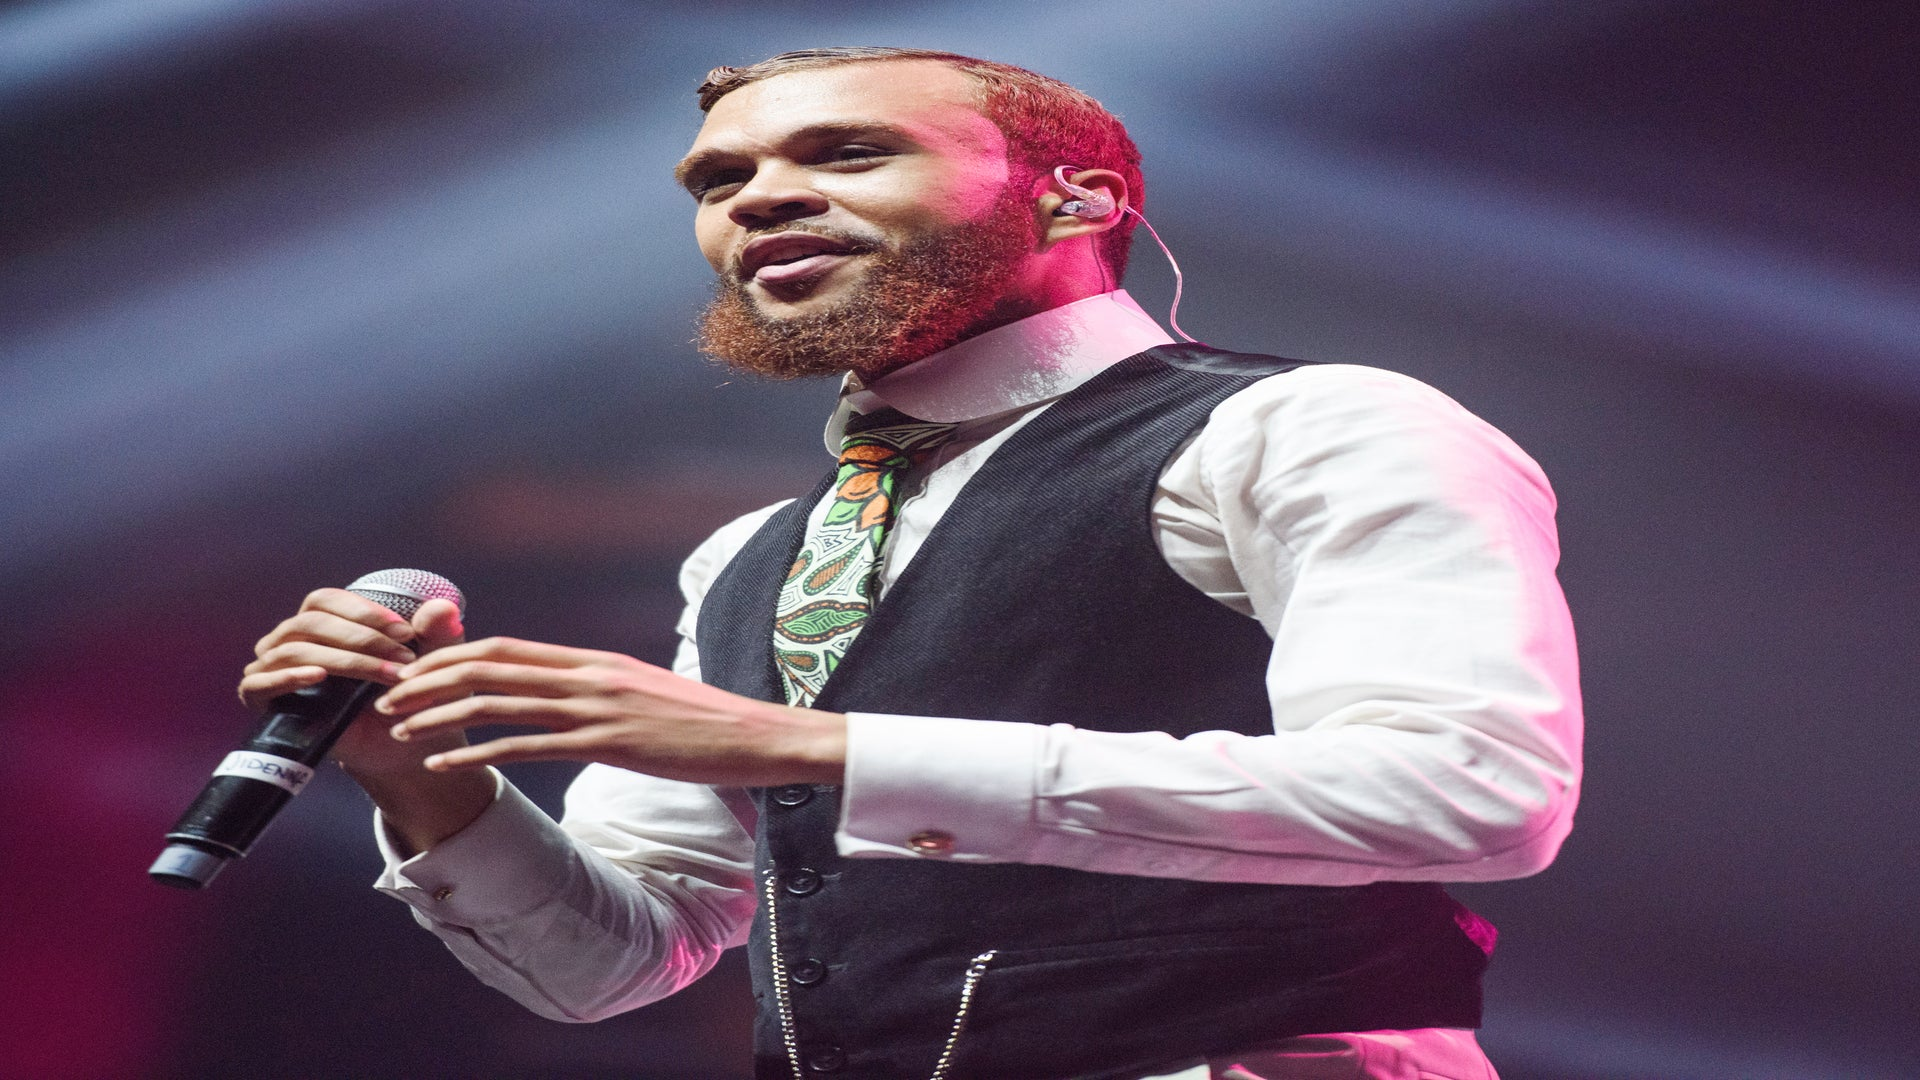 Why Does Jidenna Dress the Way That He Does? The Answer May Surprise You